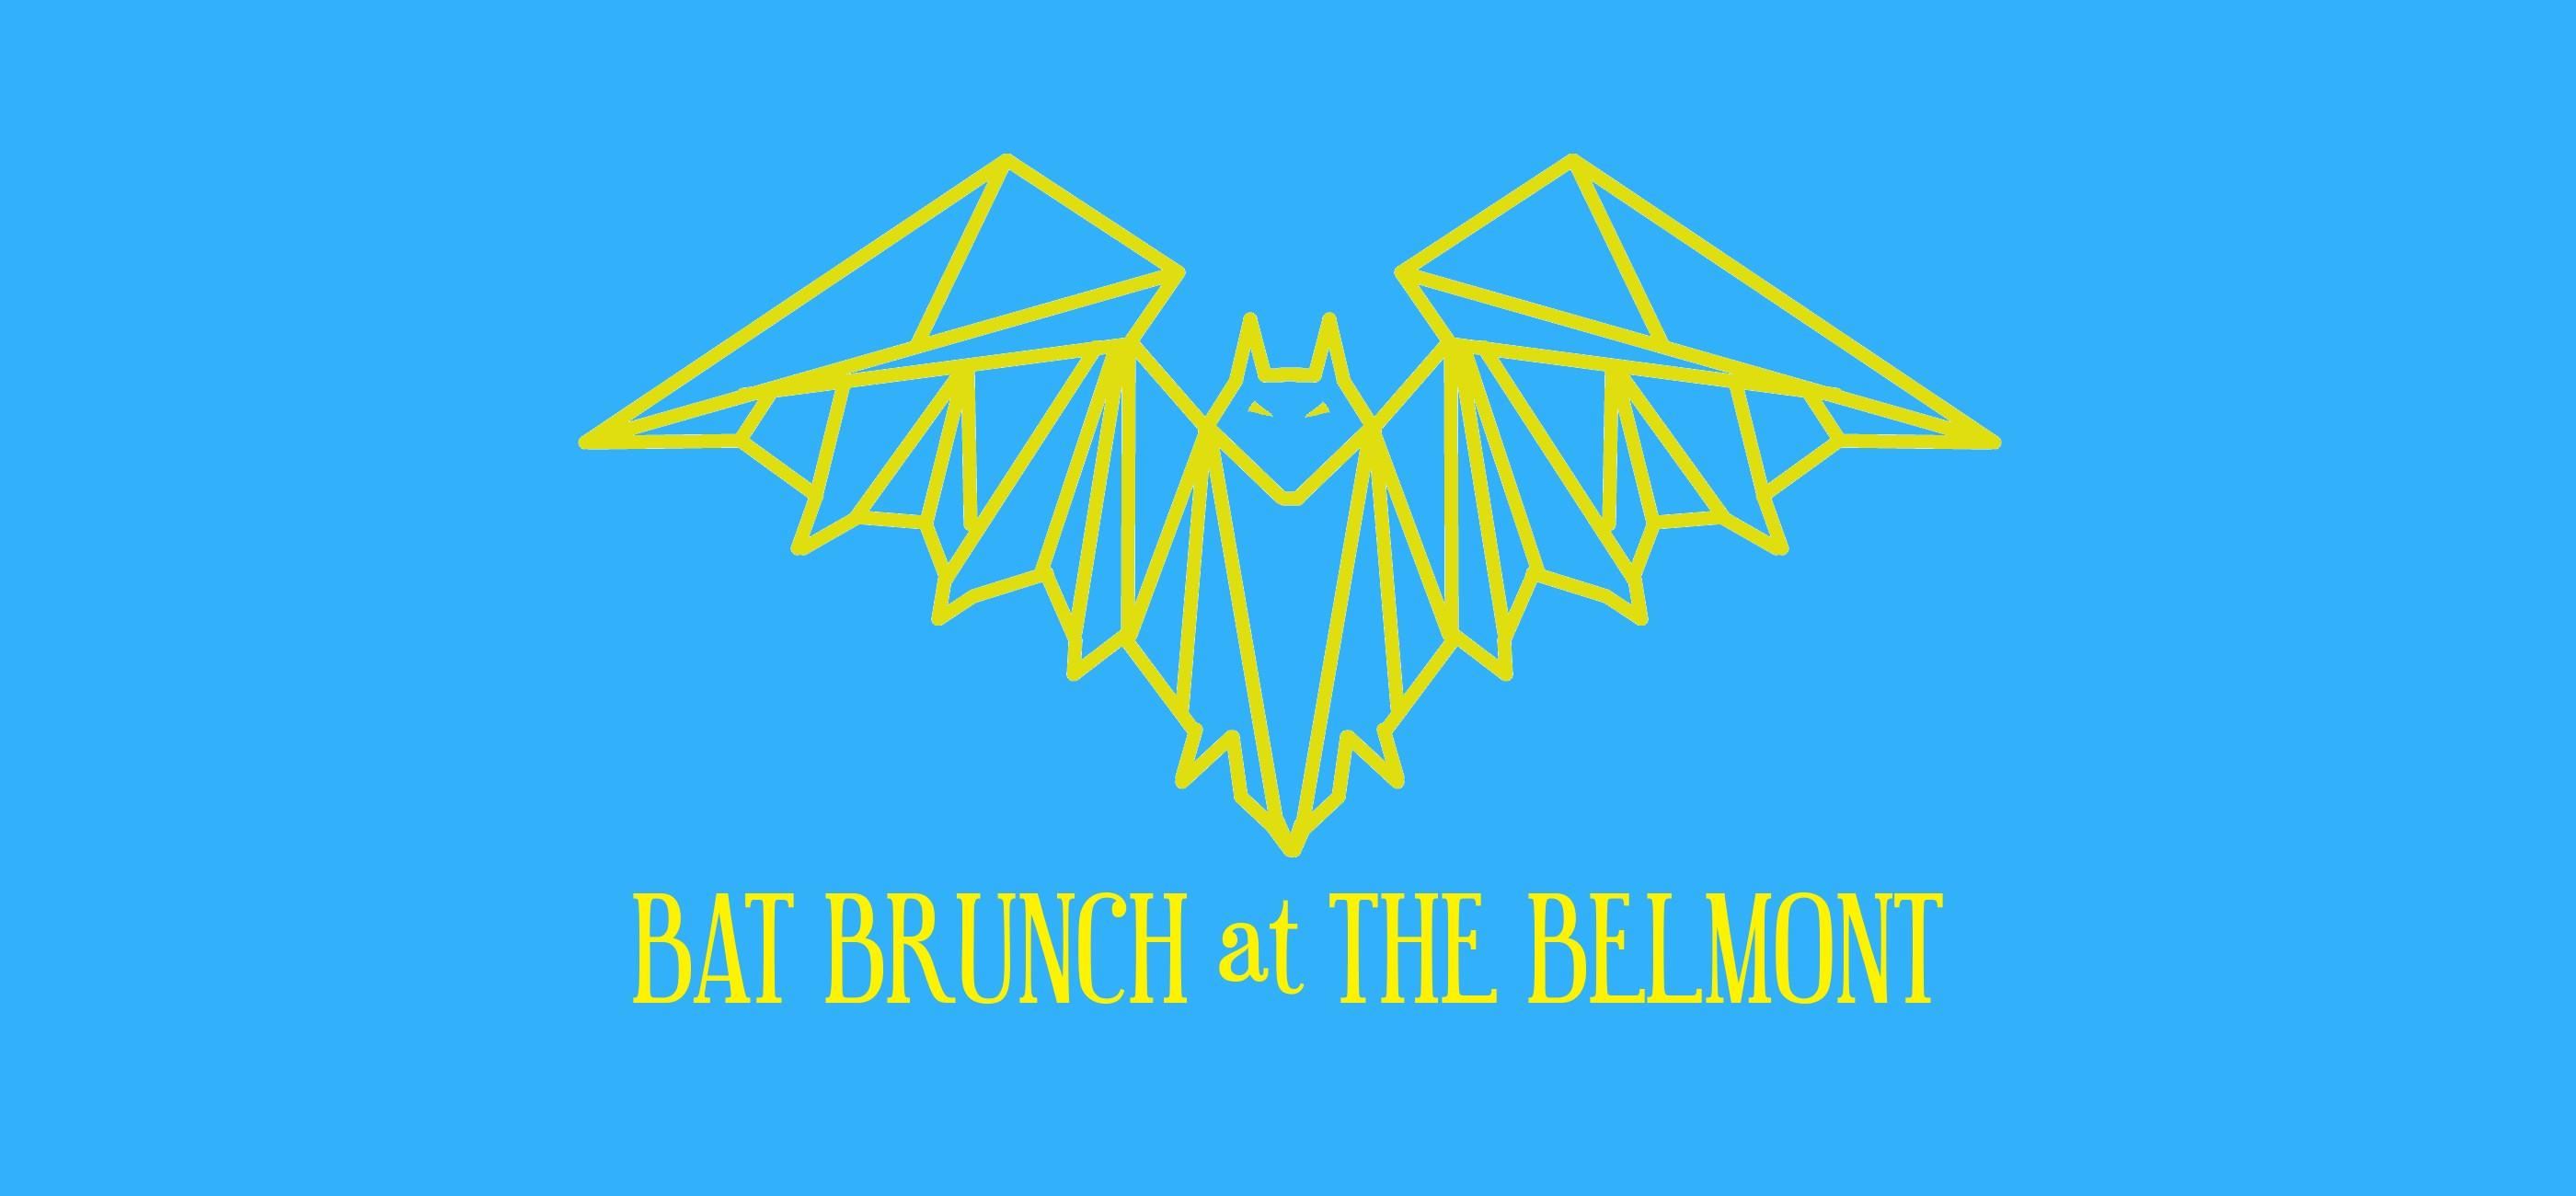 Bat Brunch featuring ZALT, Keith Sanders and Nick Adamo